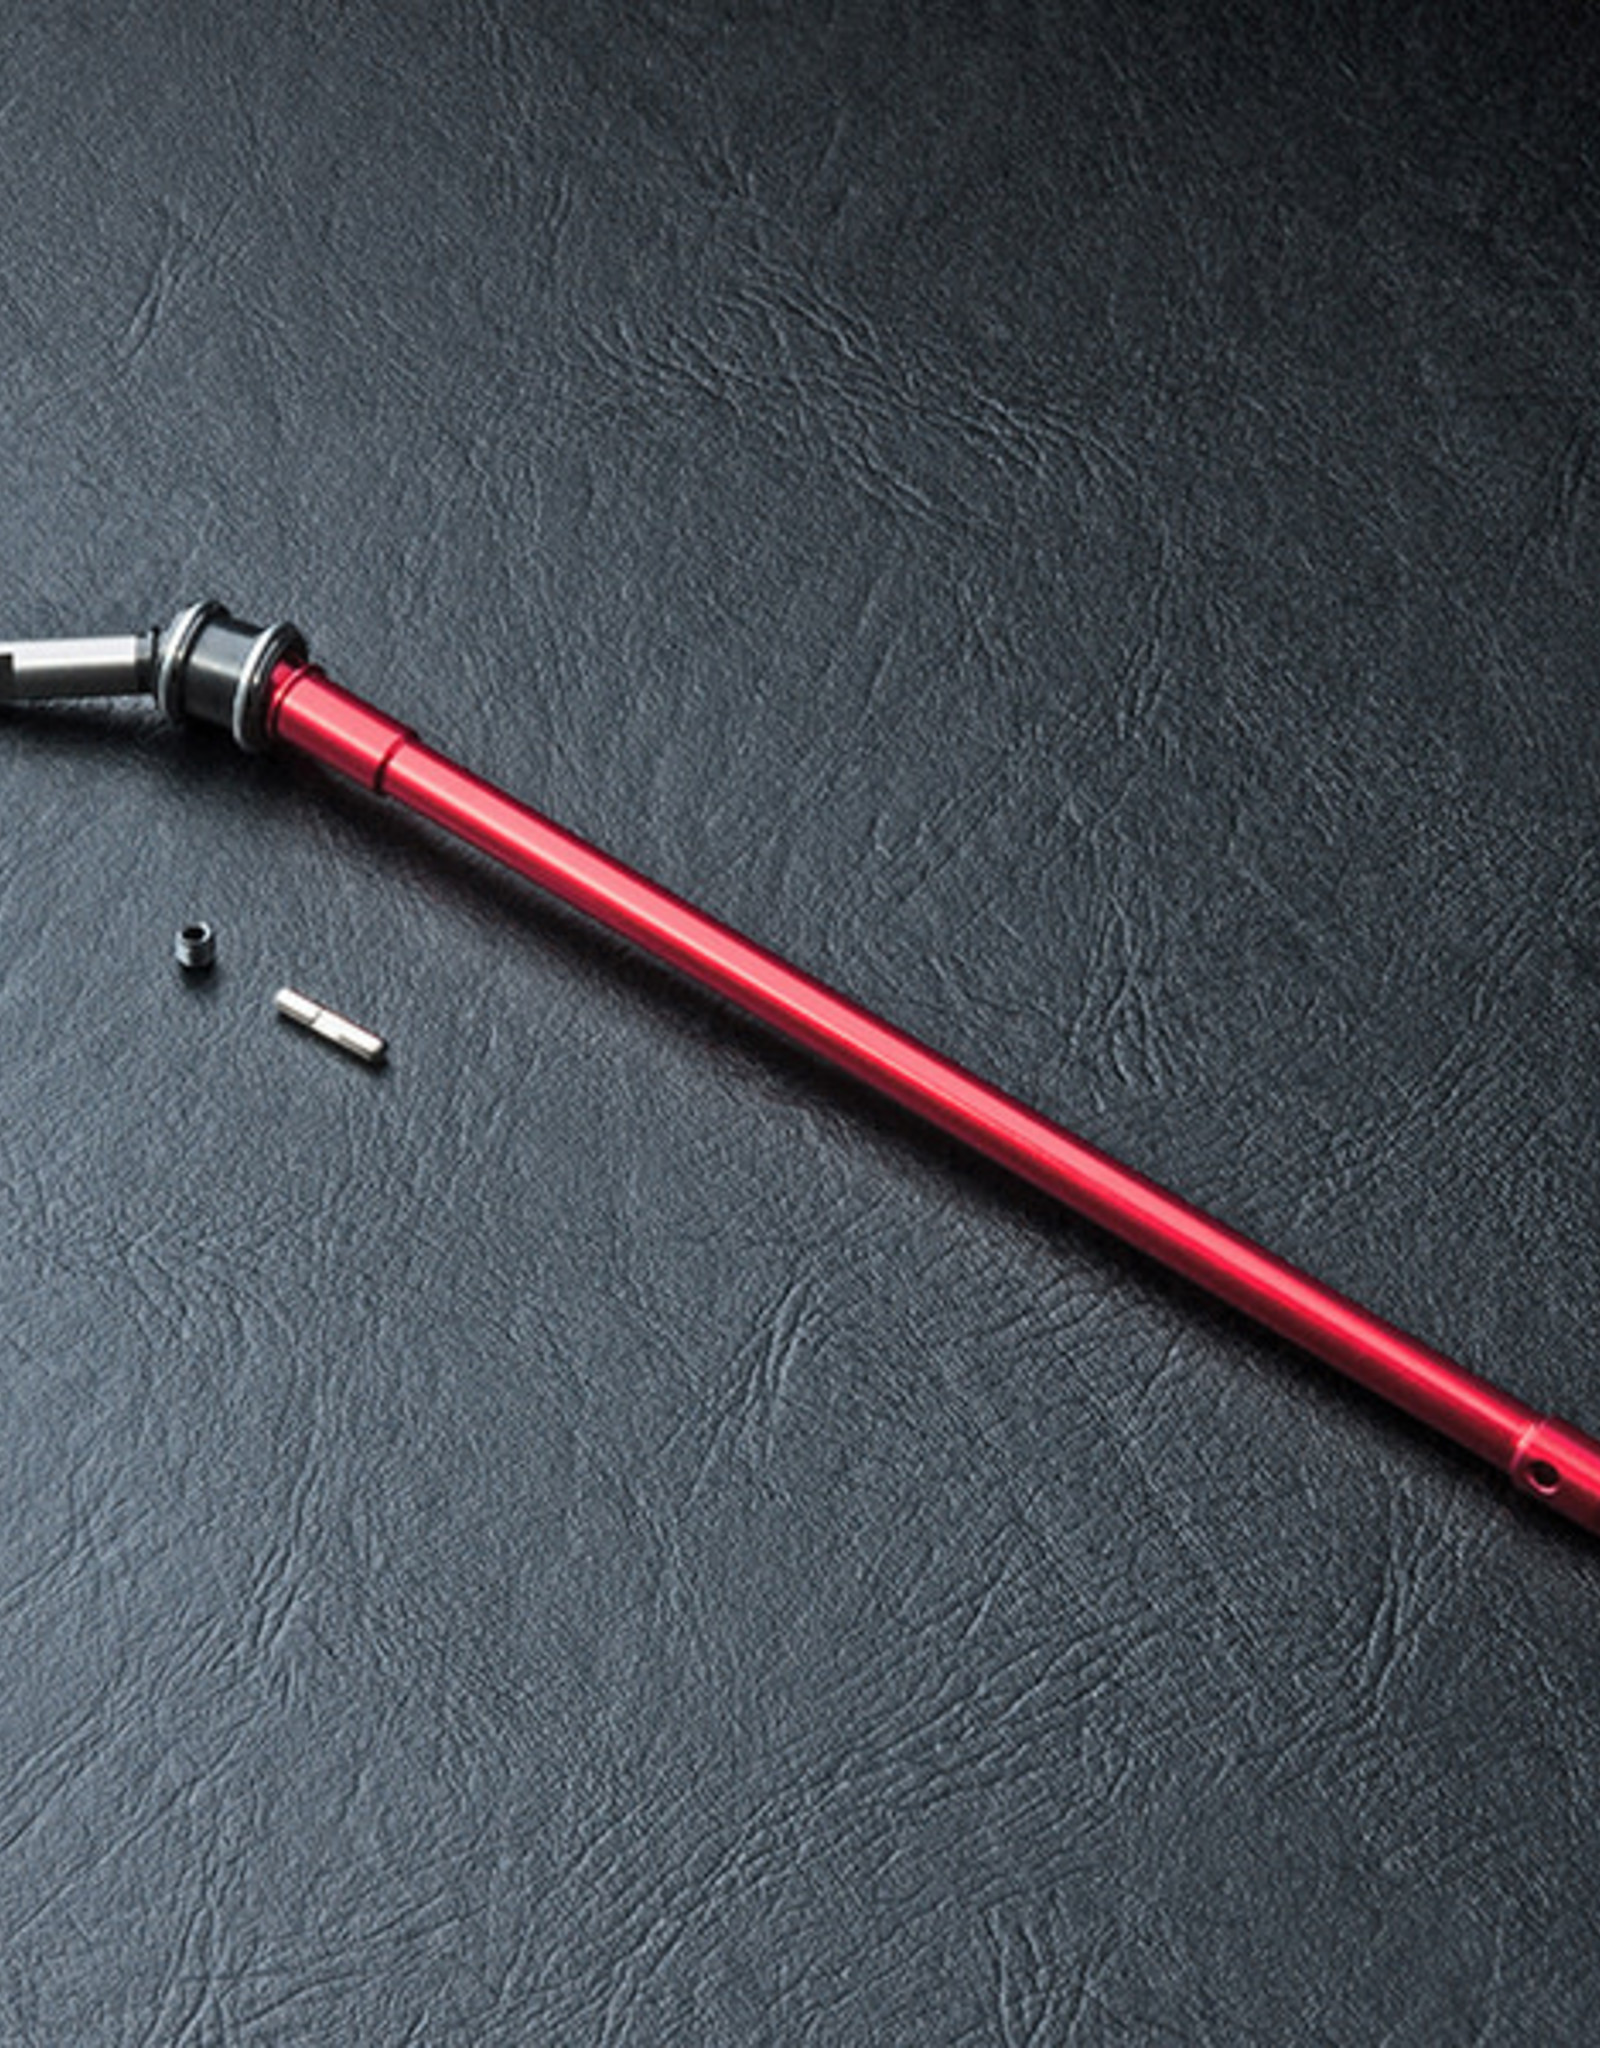 MST MXPSD210335R FXX Alum. rear drive shaft set (red) by MST